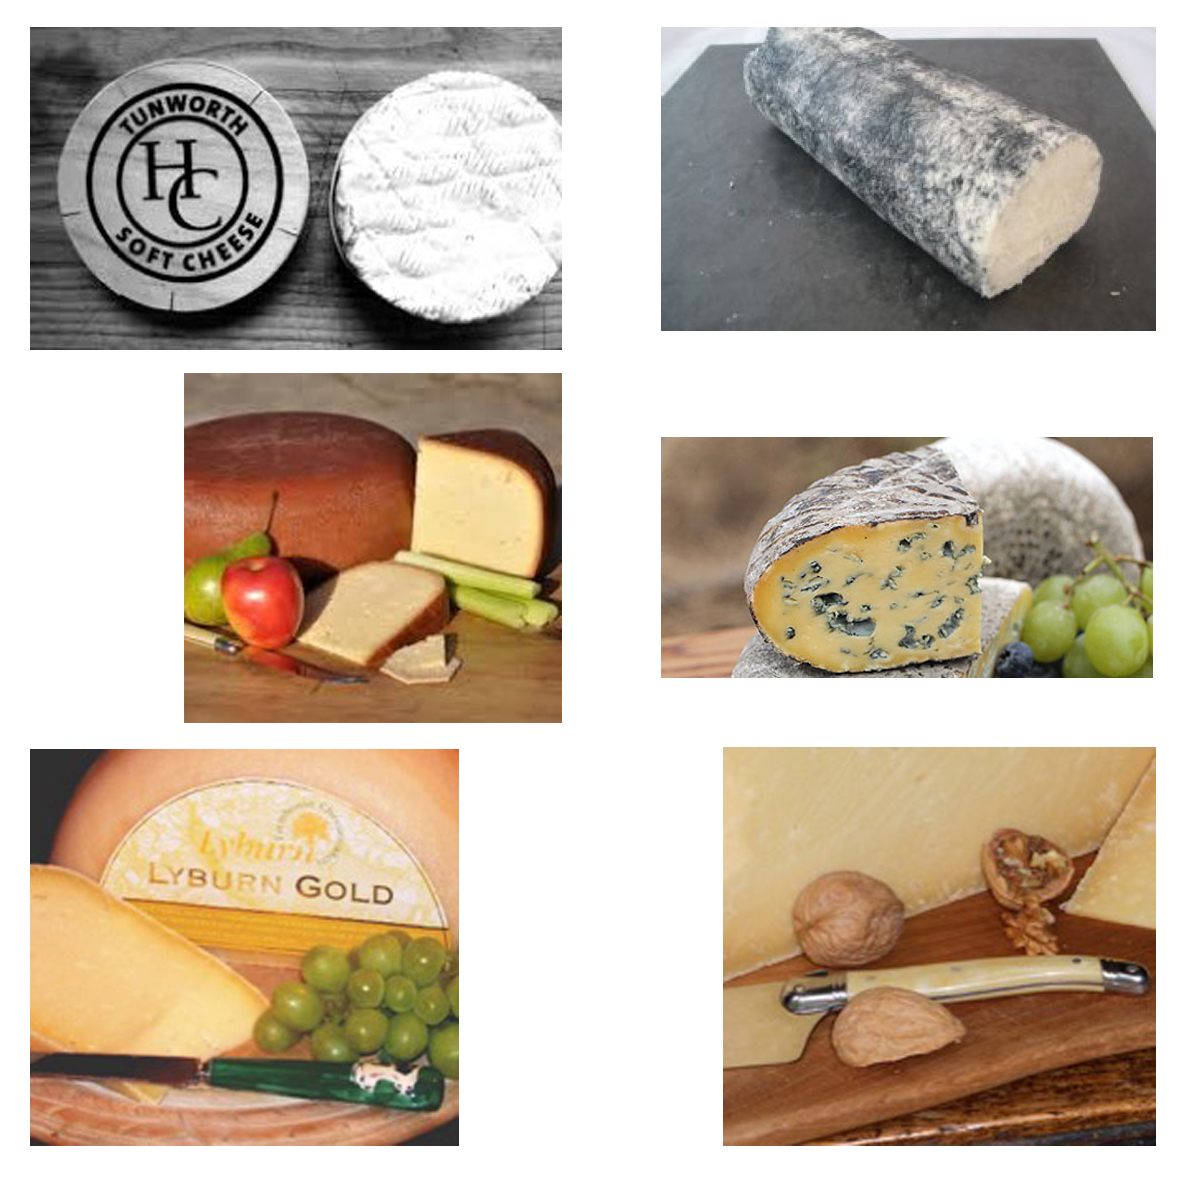 hampshire-cheeses-hilliards.jpg